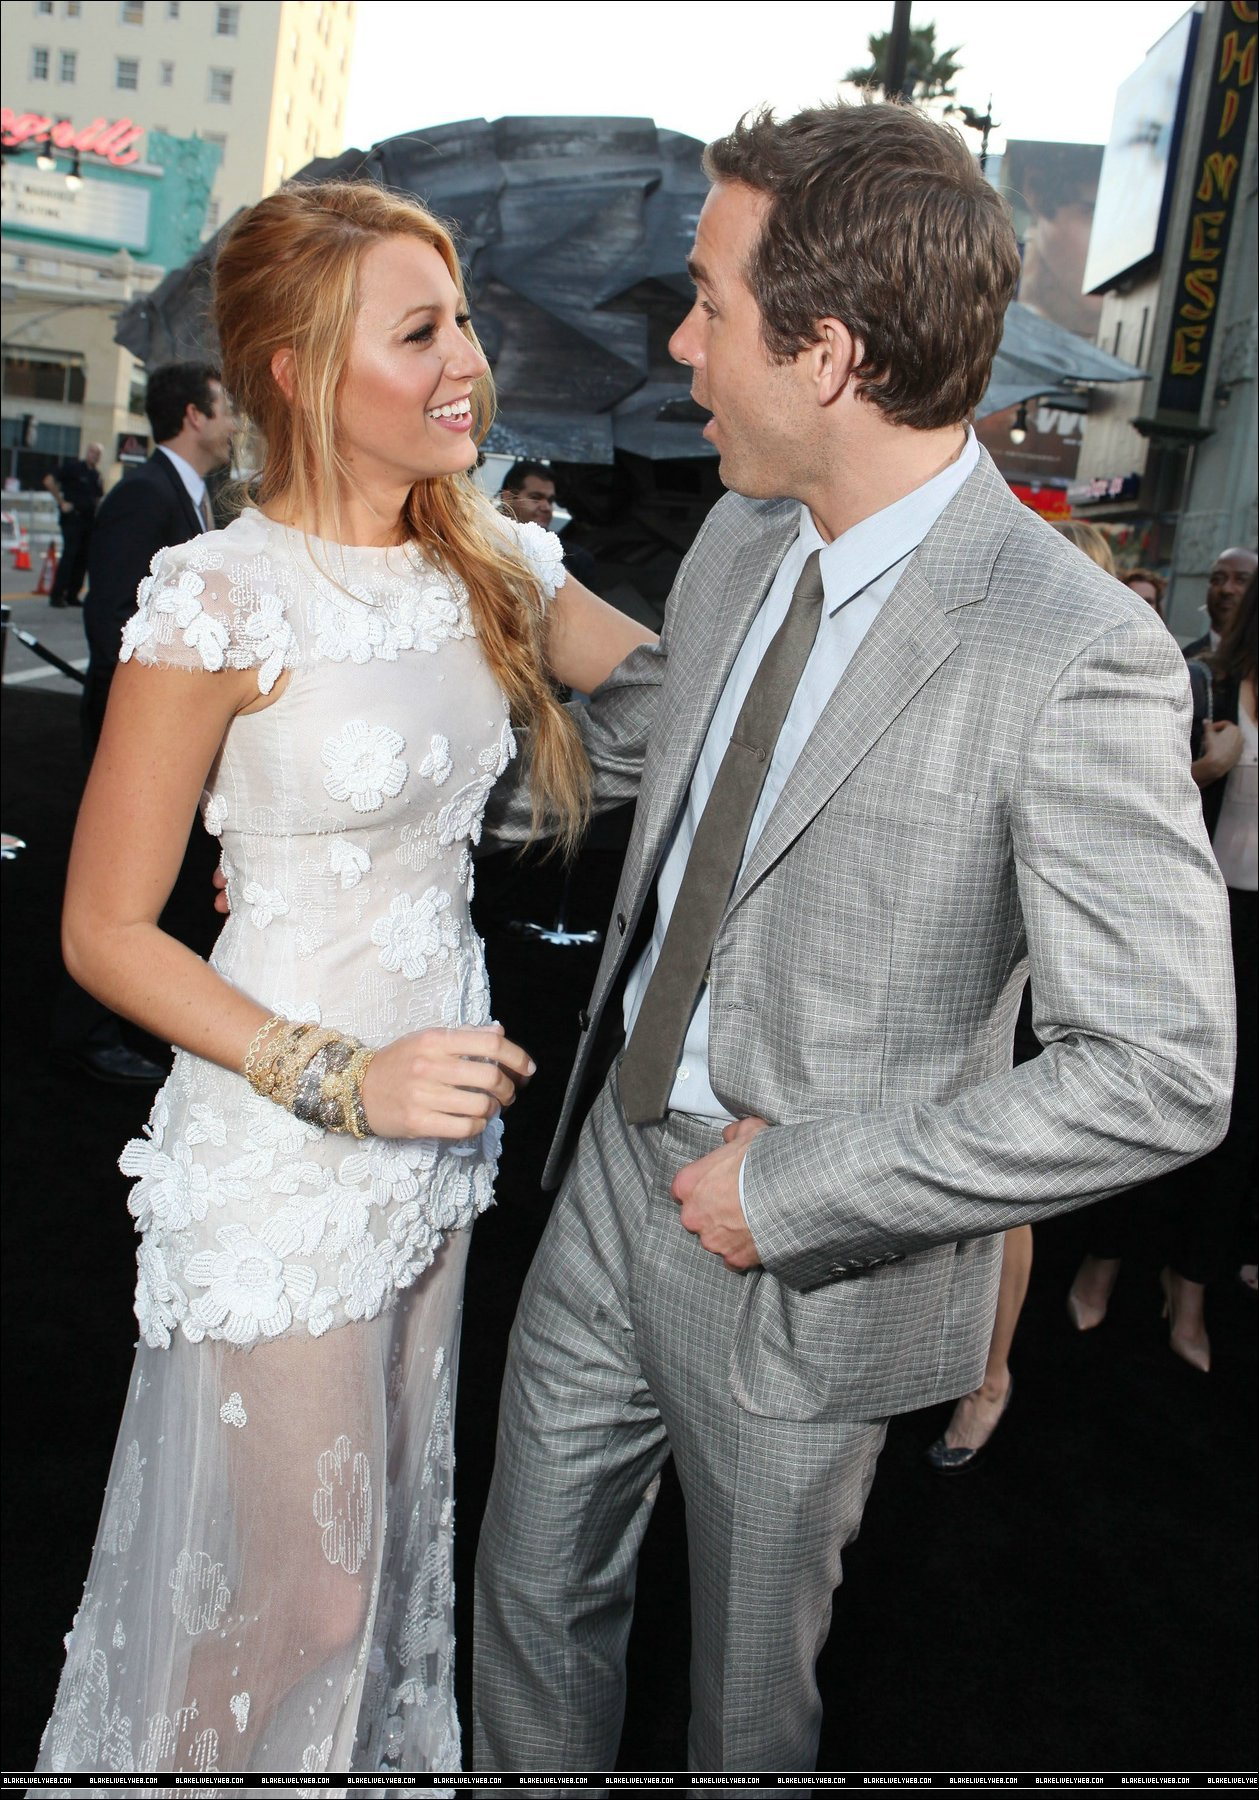 blake lively and ryan reynolds denying pregnancy reports